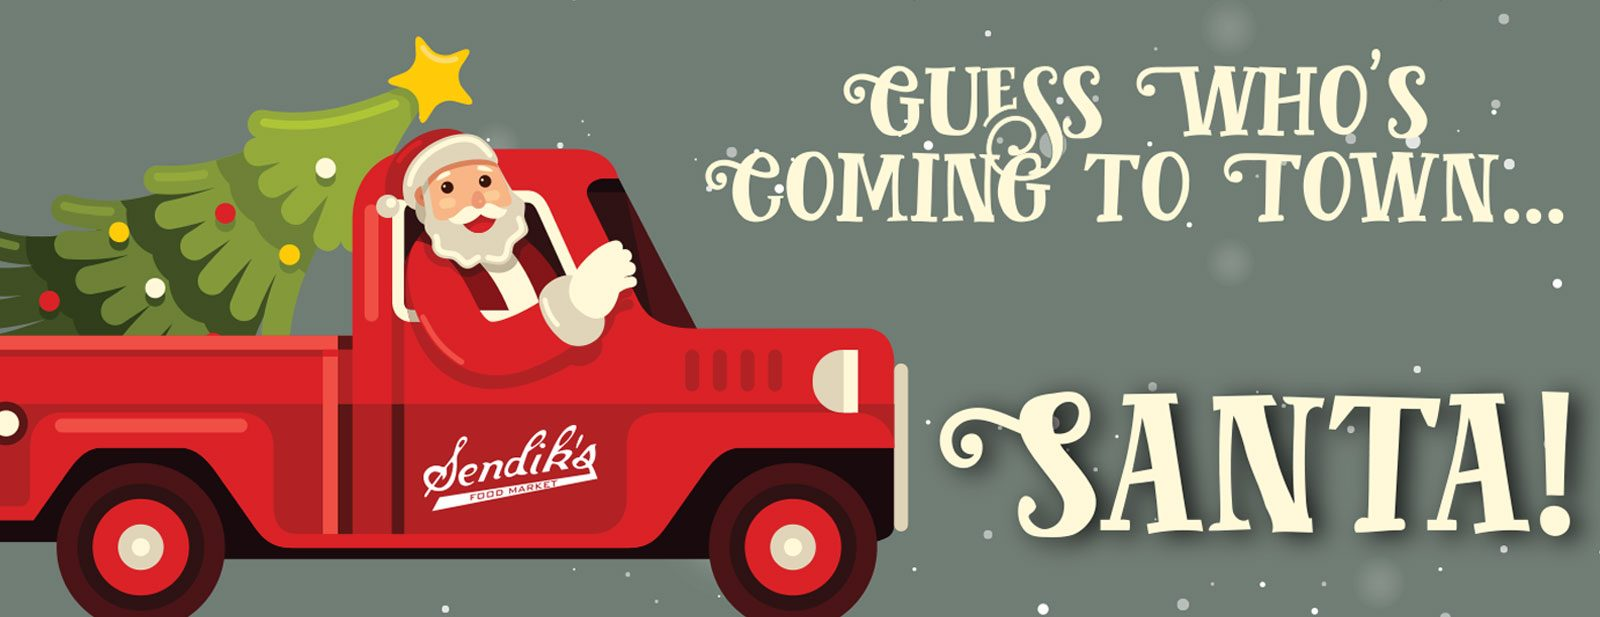 Guess Who's Coming To Town...Santa!